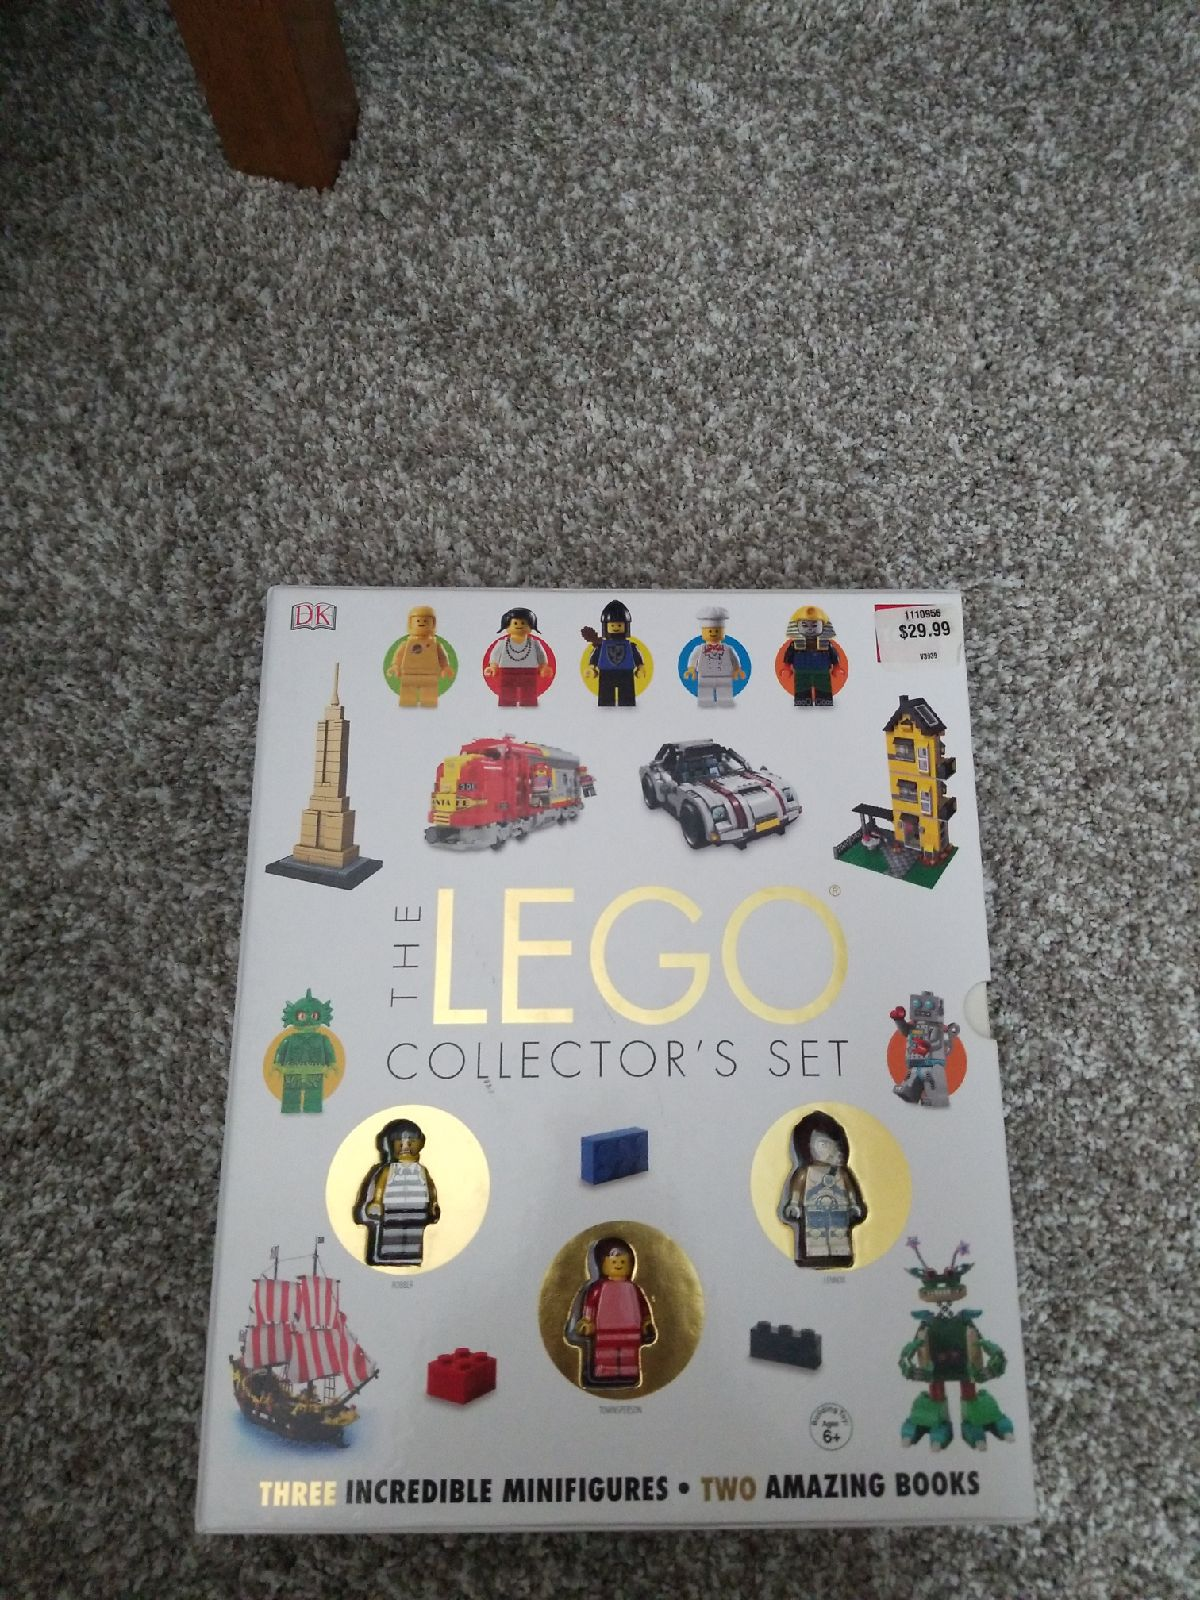 The Lego collector's set